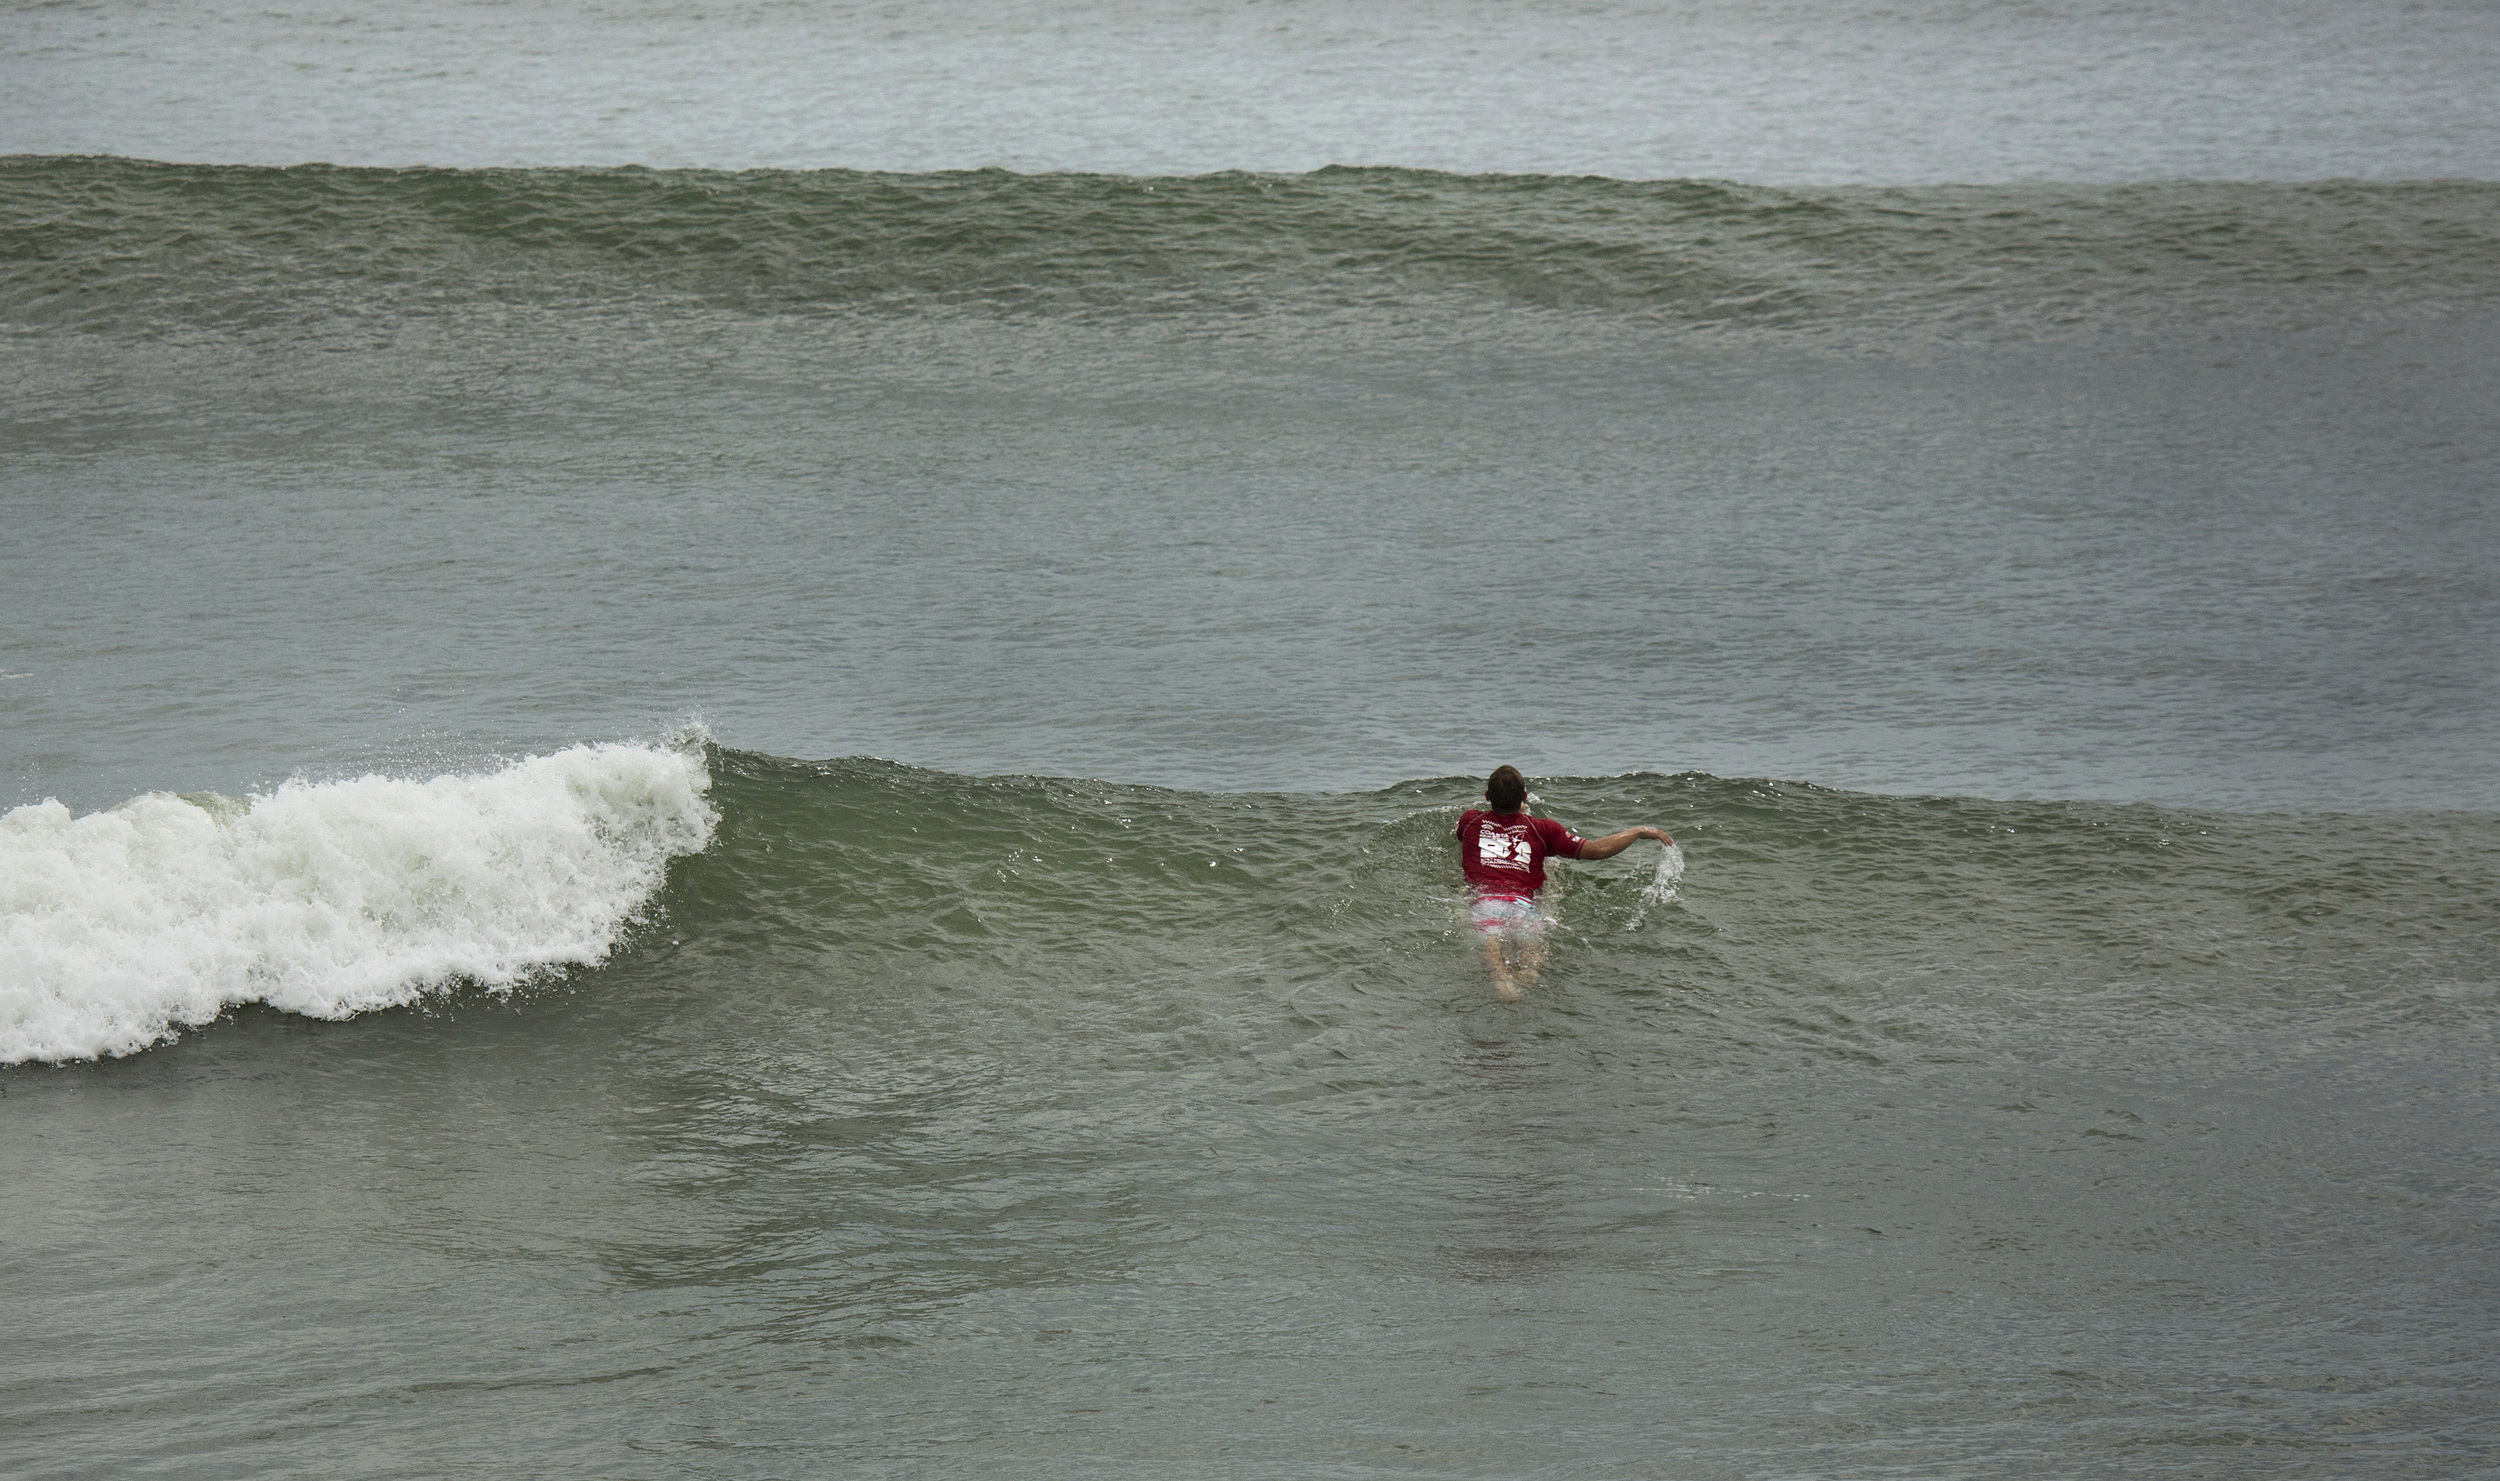 2013, As the tide changes at 1st street in Virginia Beach, Virginia, the afternoon surf begins to improve during Coastal Edge East Coast Surfing Championships.